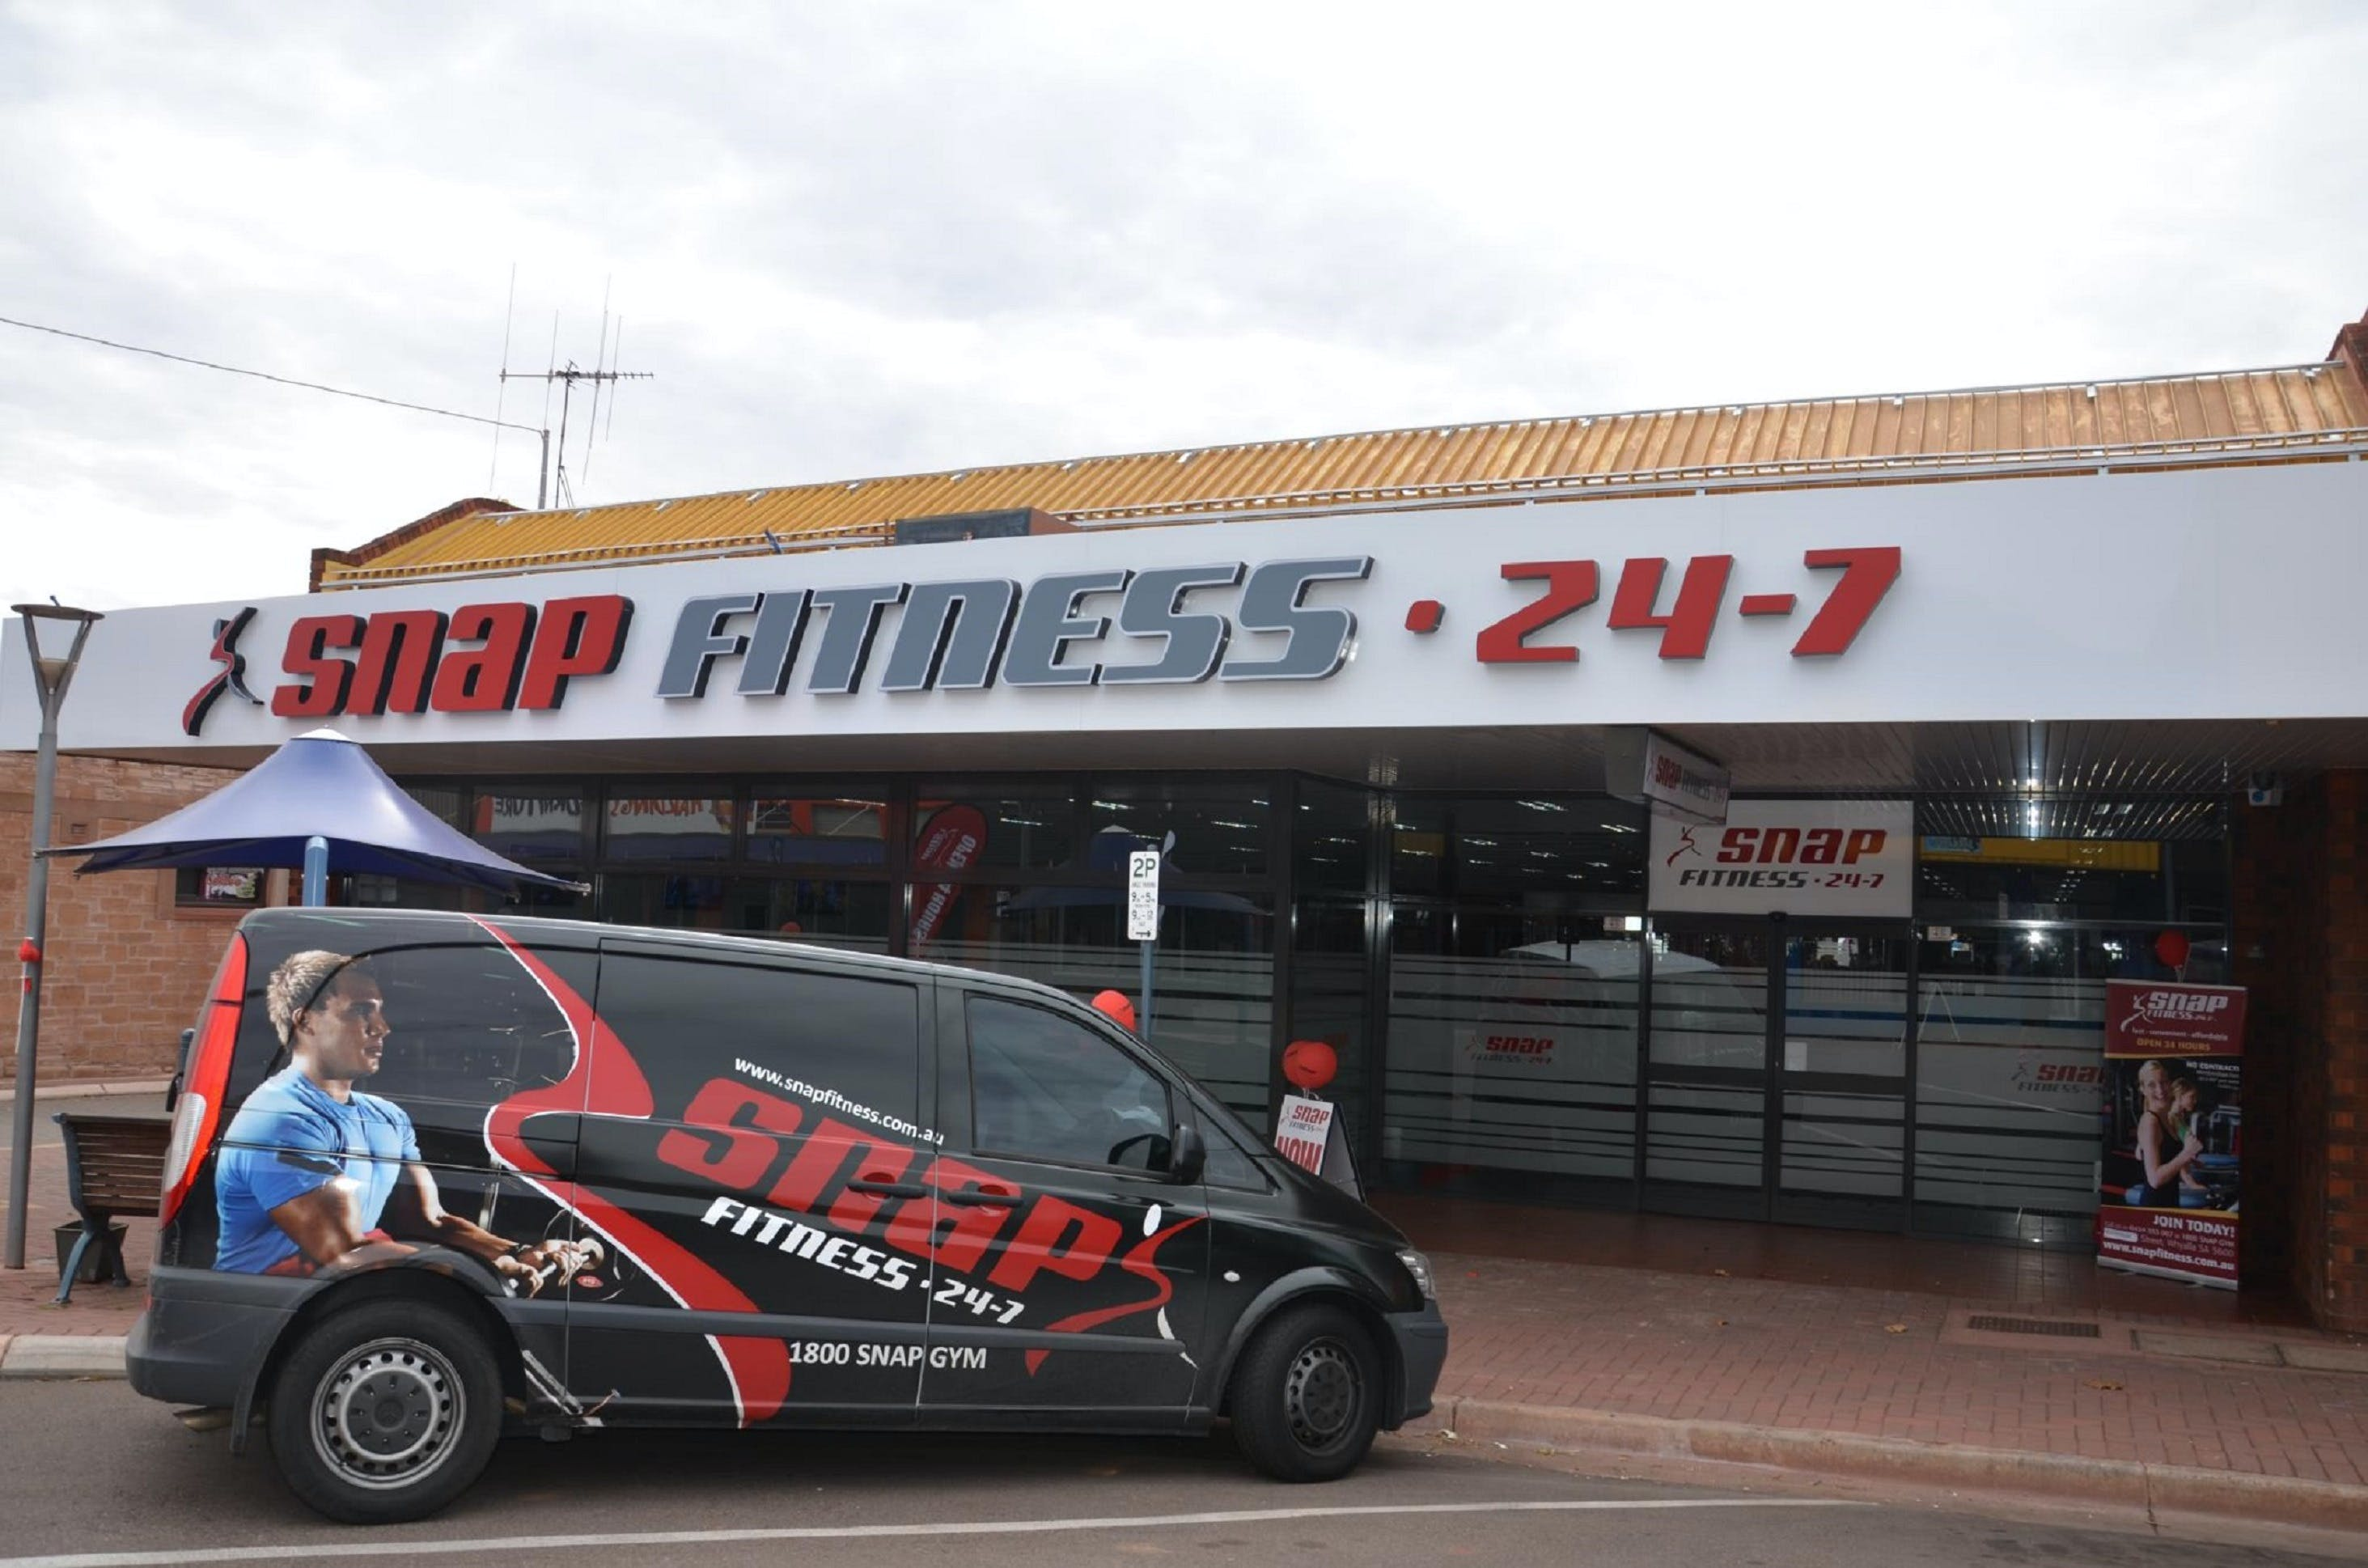 Snap Fitness Whyalla 24/7 gym - Geraldton Accommodation